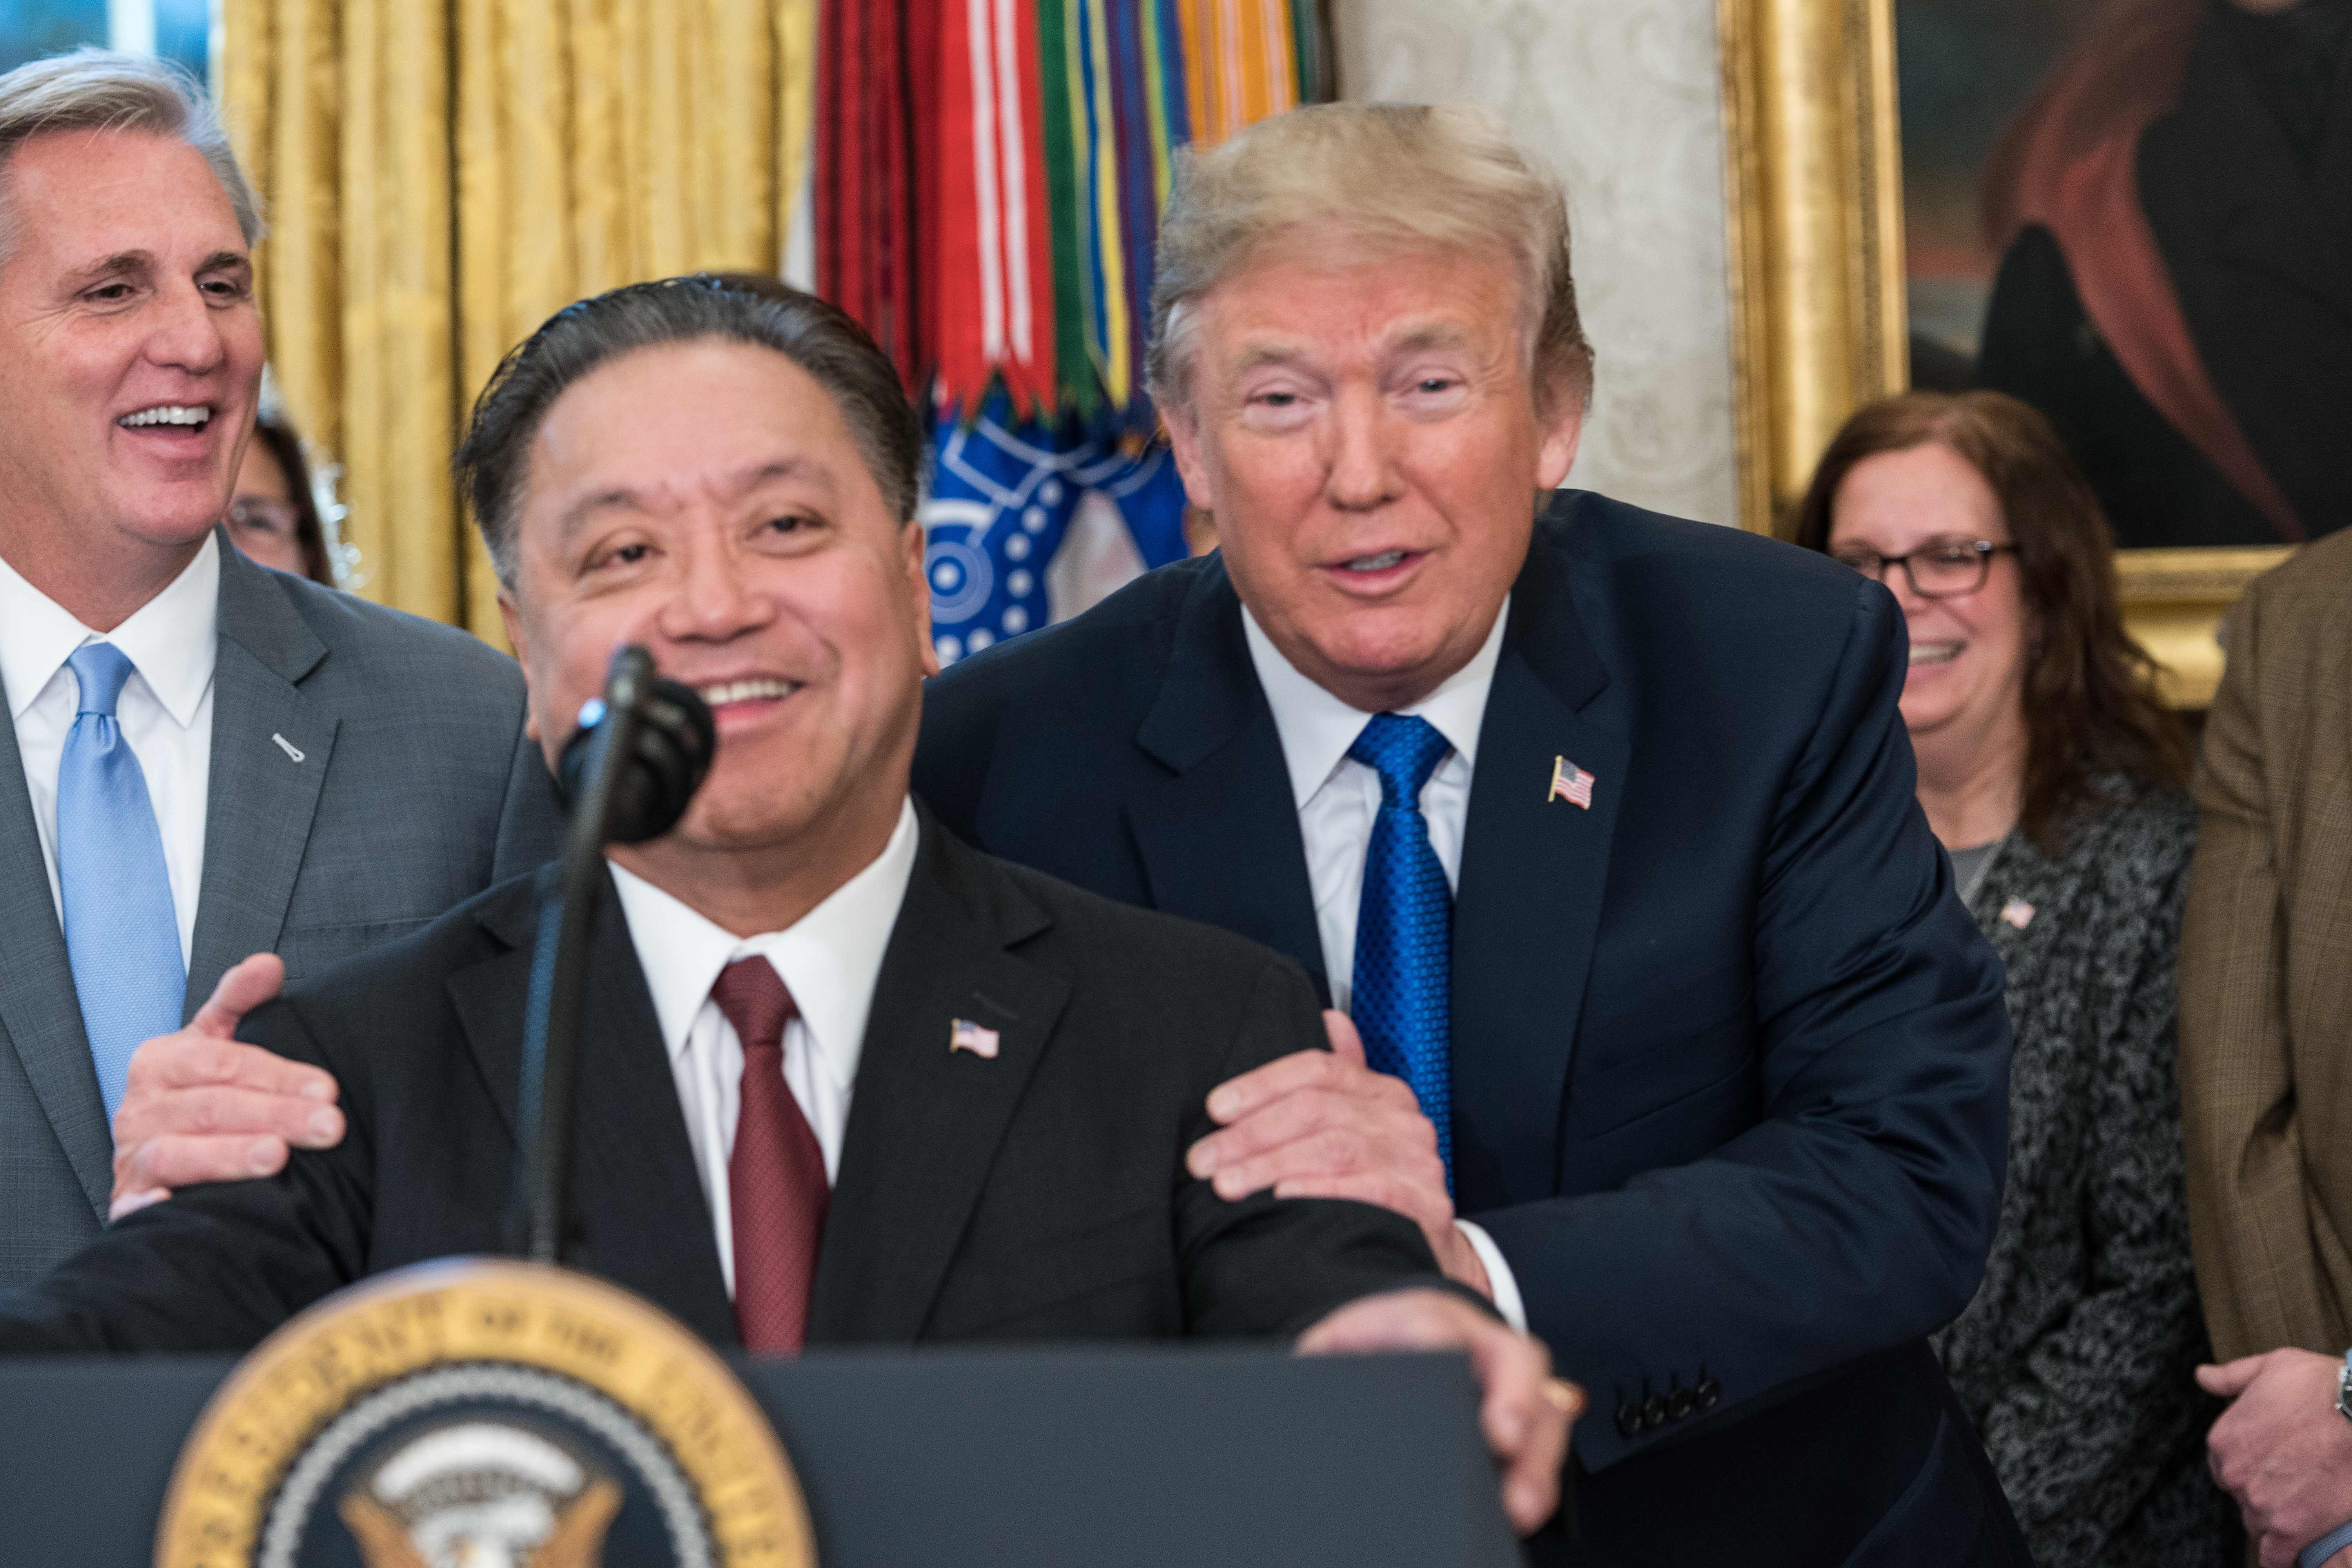 Broadcom CEO Hock Tan at the White House